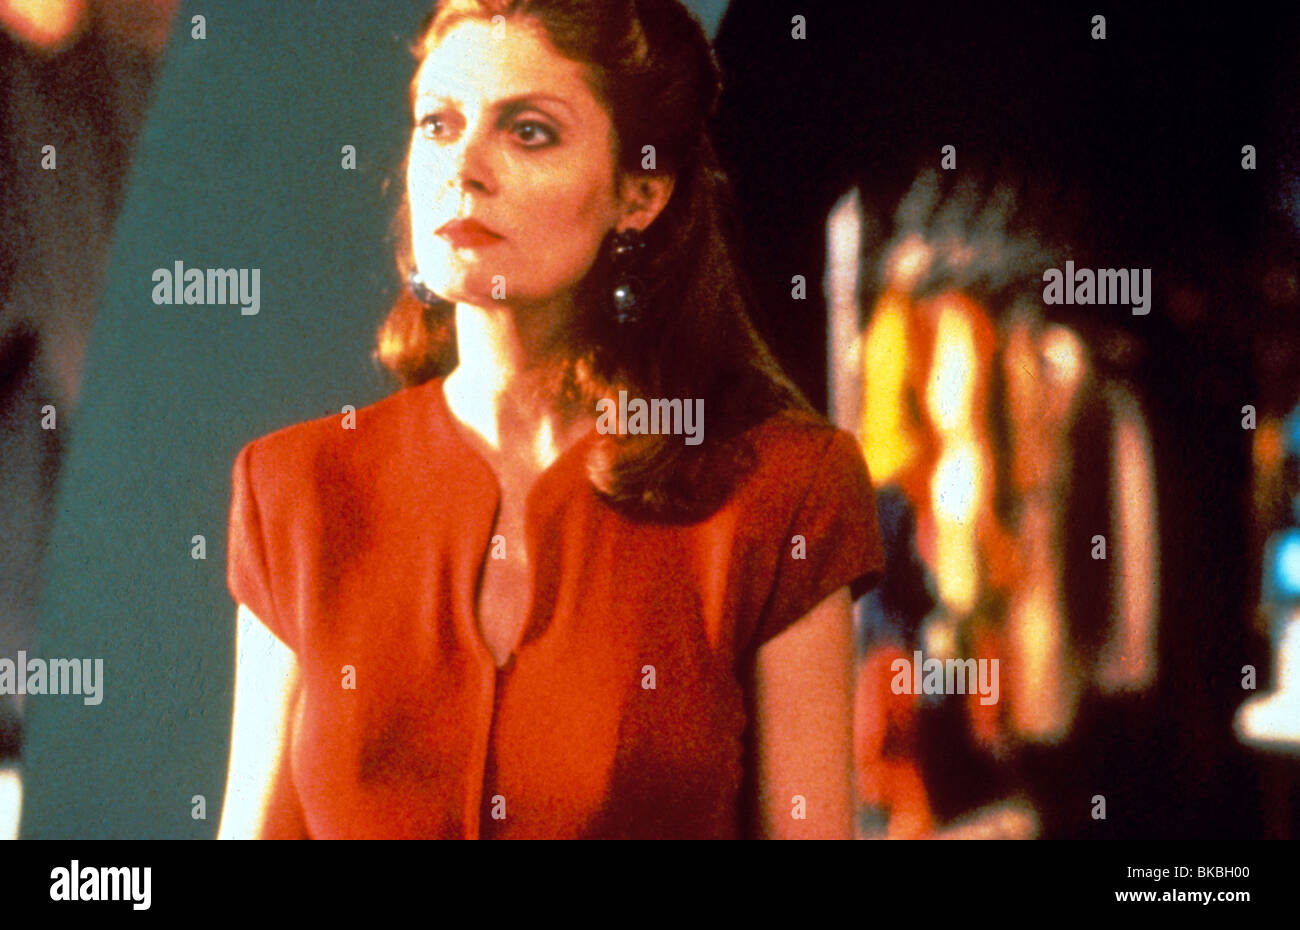 LIGHT SLEEPER (1992) SUSAN SARANDON LSR 019 - Stock Image